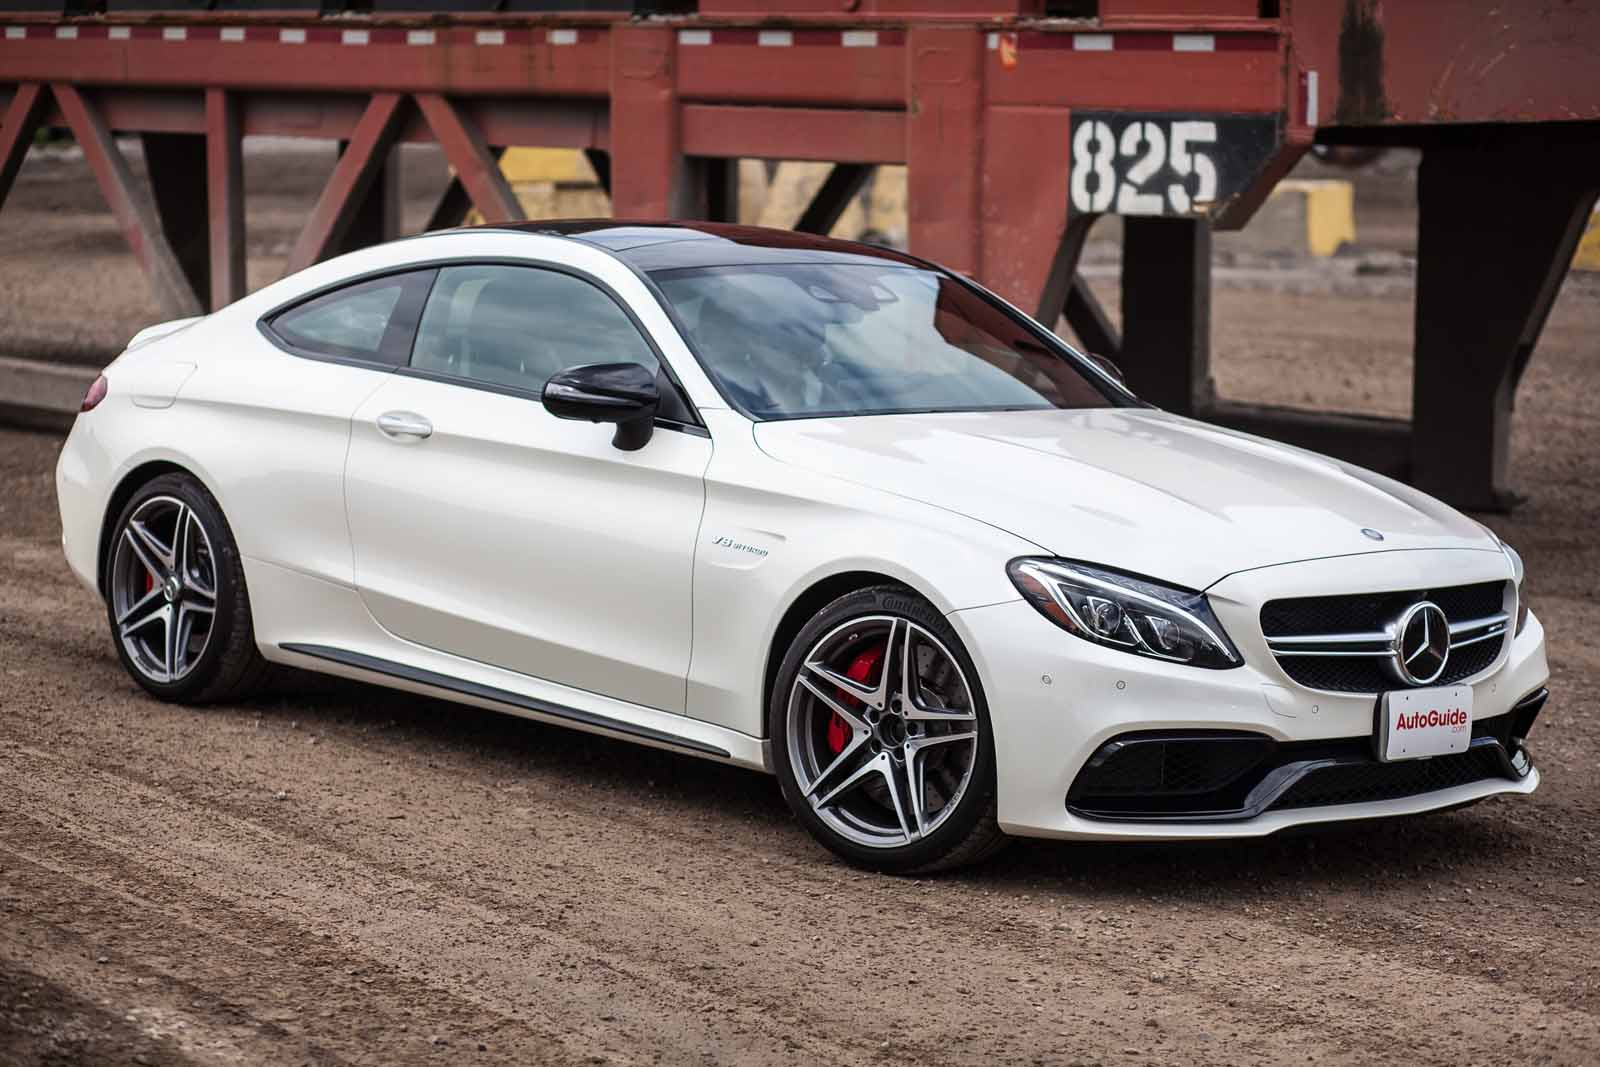 Mercedes Benz S Amg Coupe Price In India